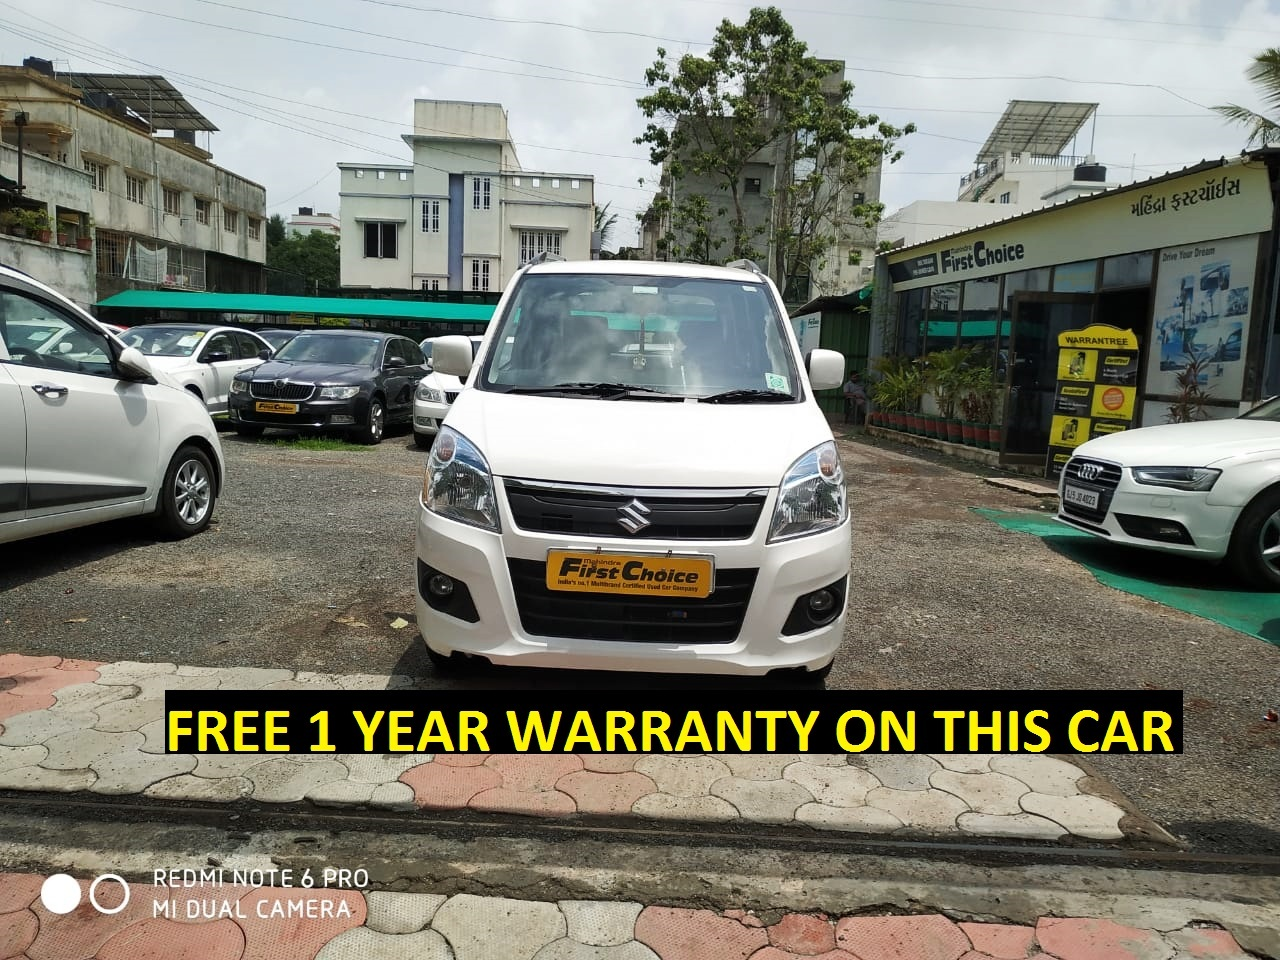 Used Cars In Surat - Second Hand Cars For Sale - Used Cars